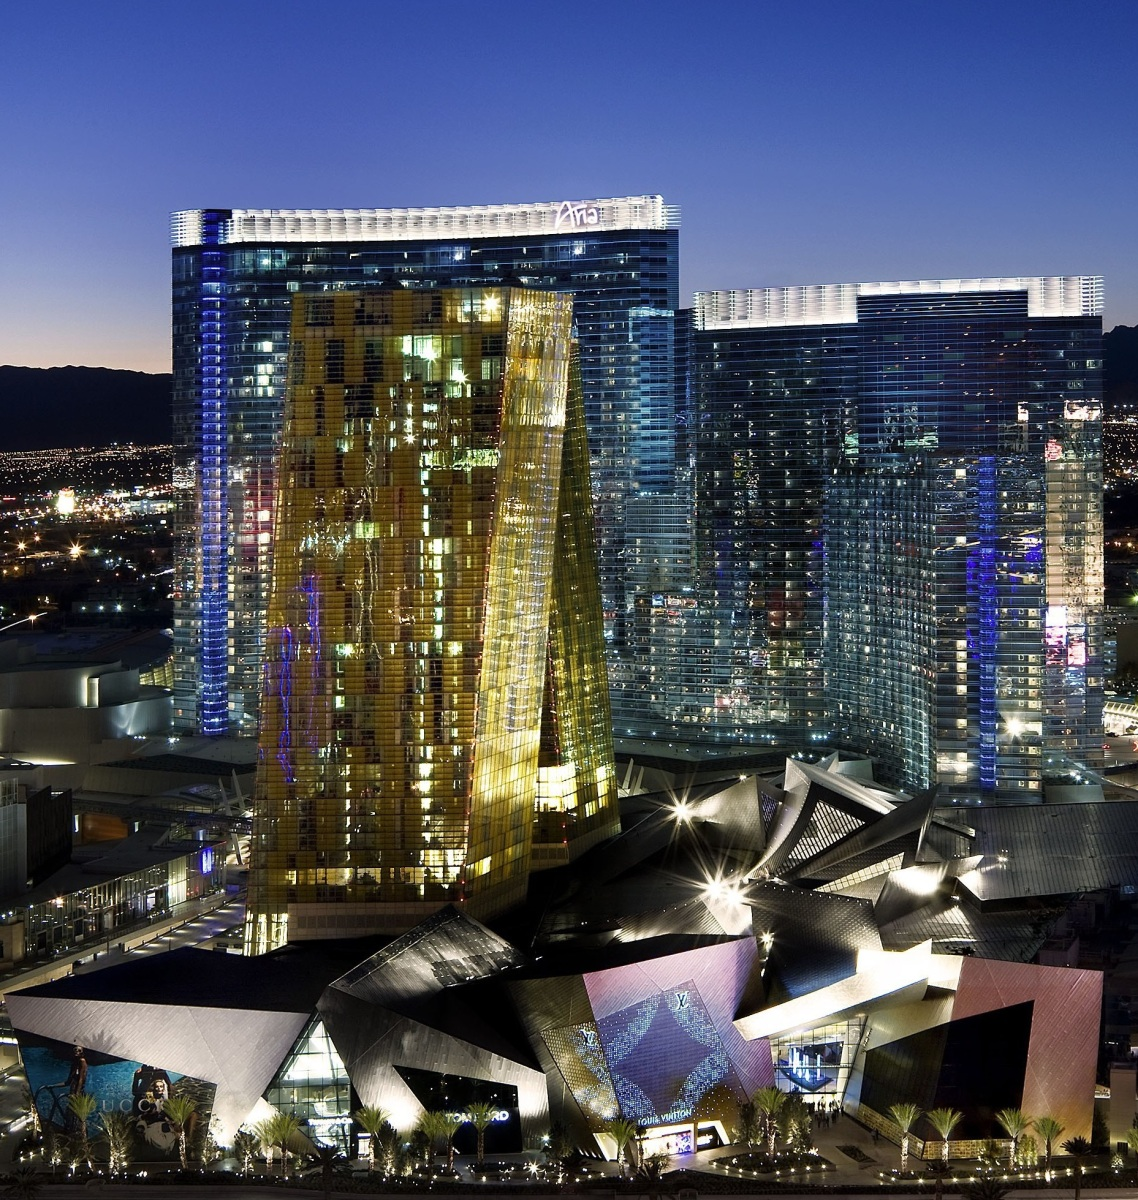 Las Vegas hotels are as green as lights